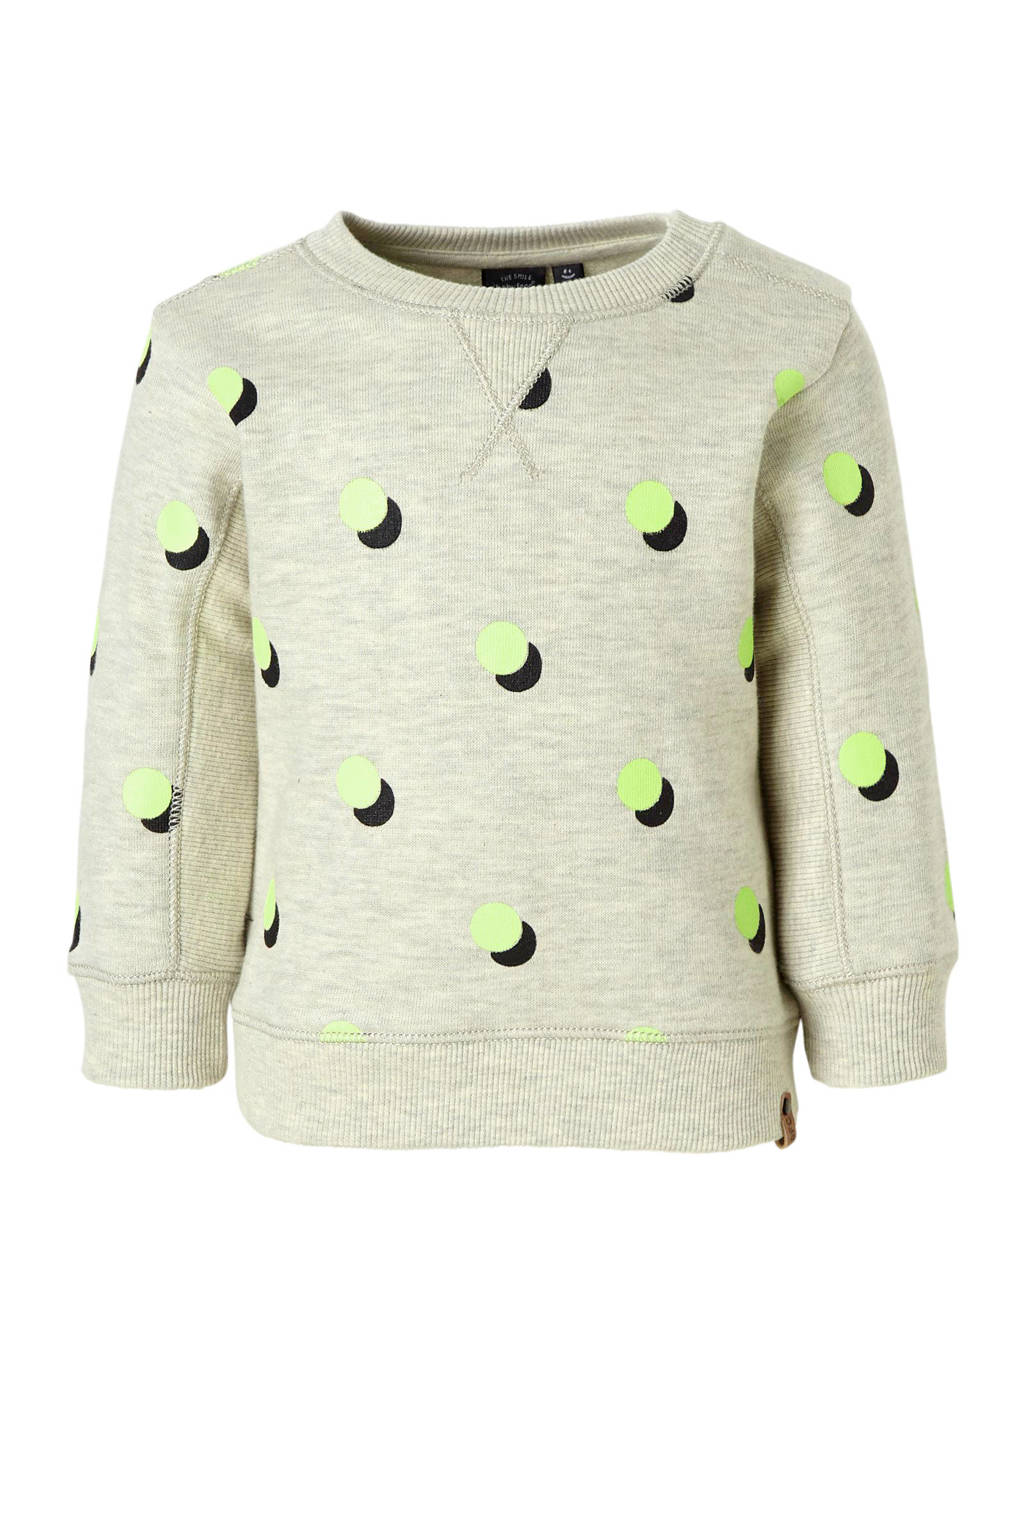 Babyface sweater met all over print grijs, Grijs melange/lime